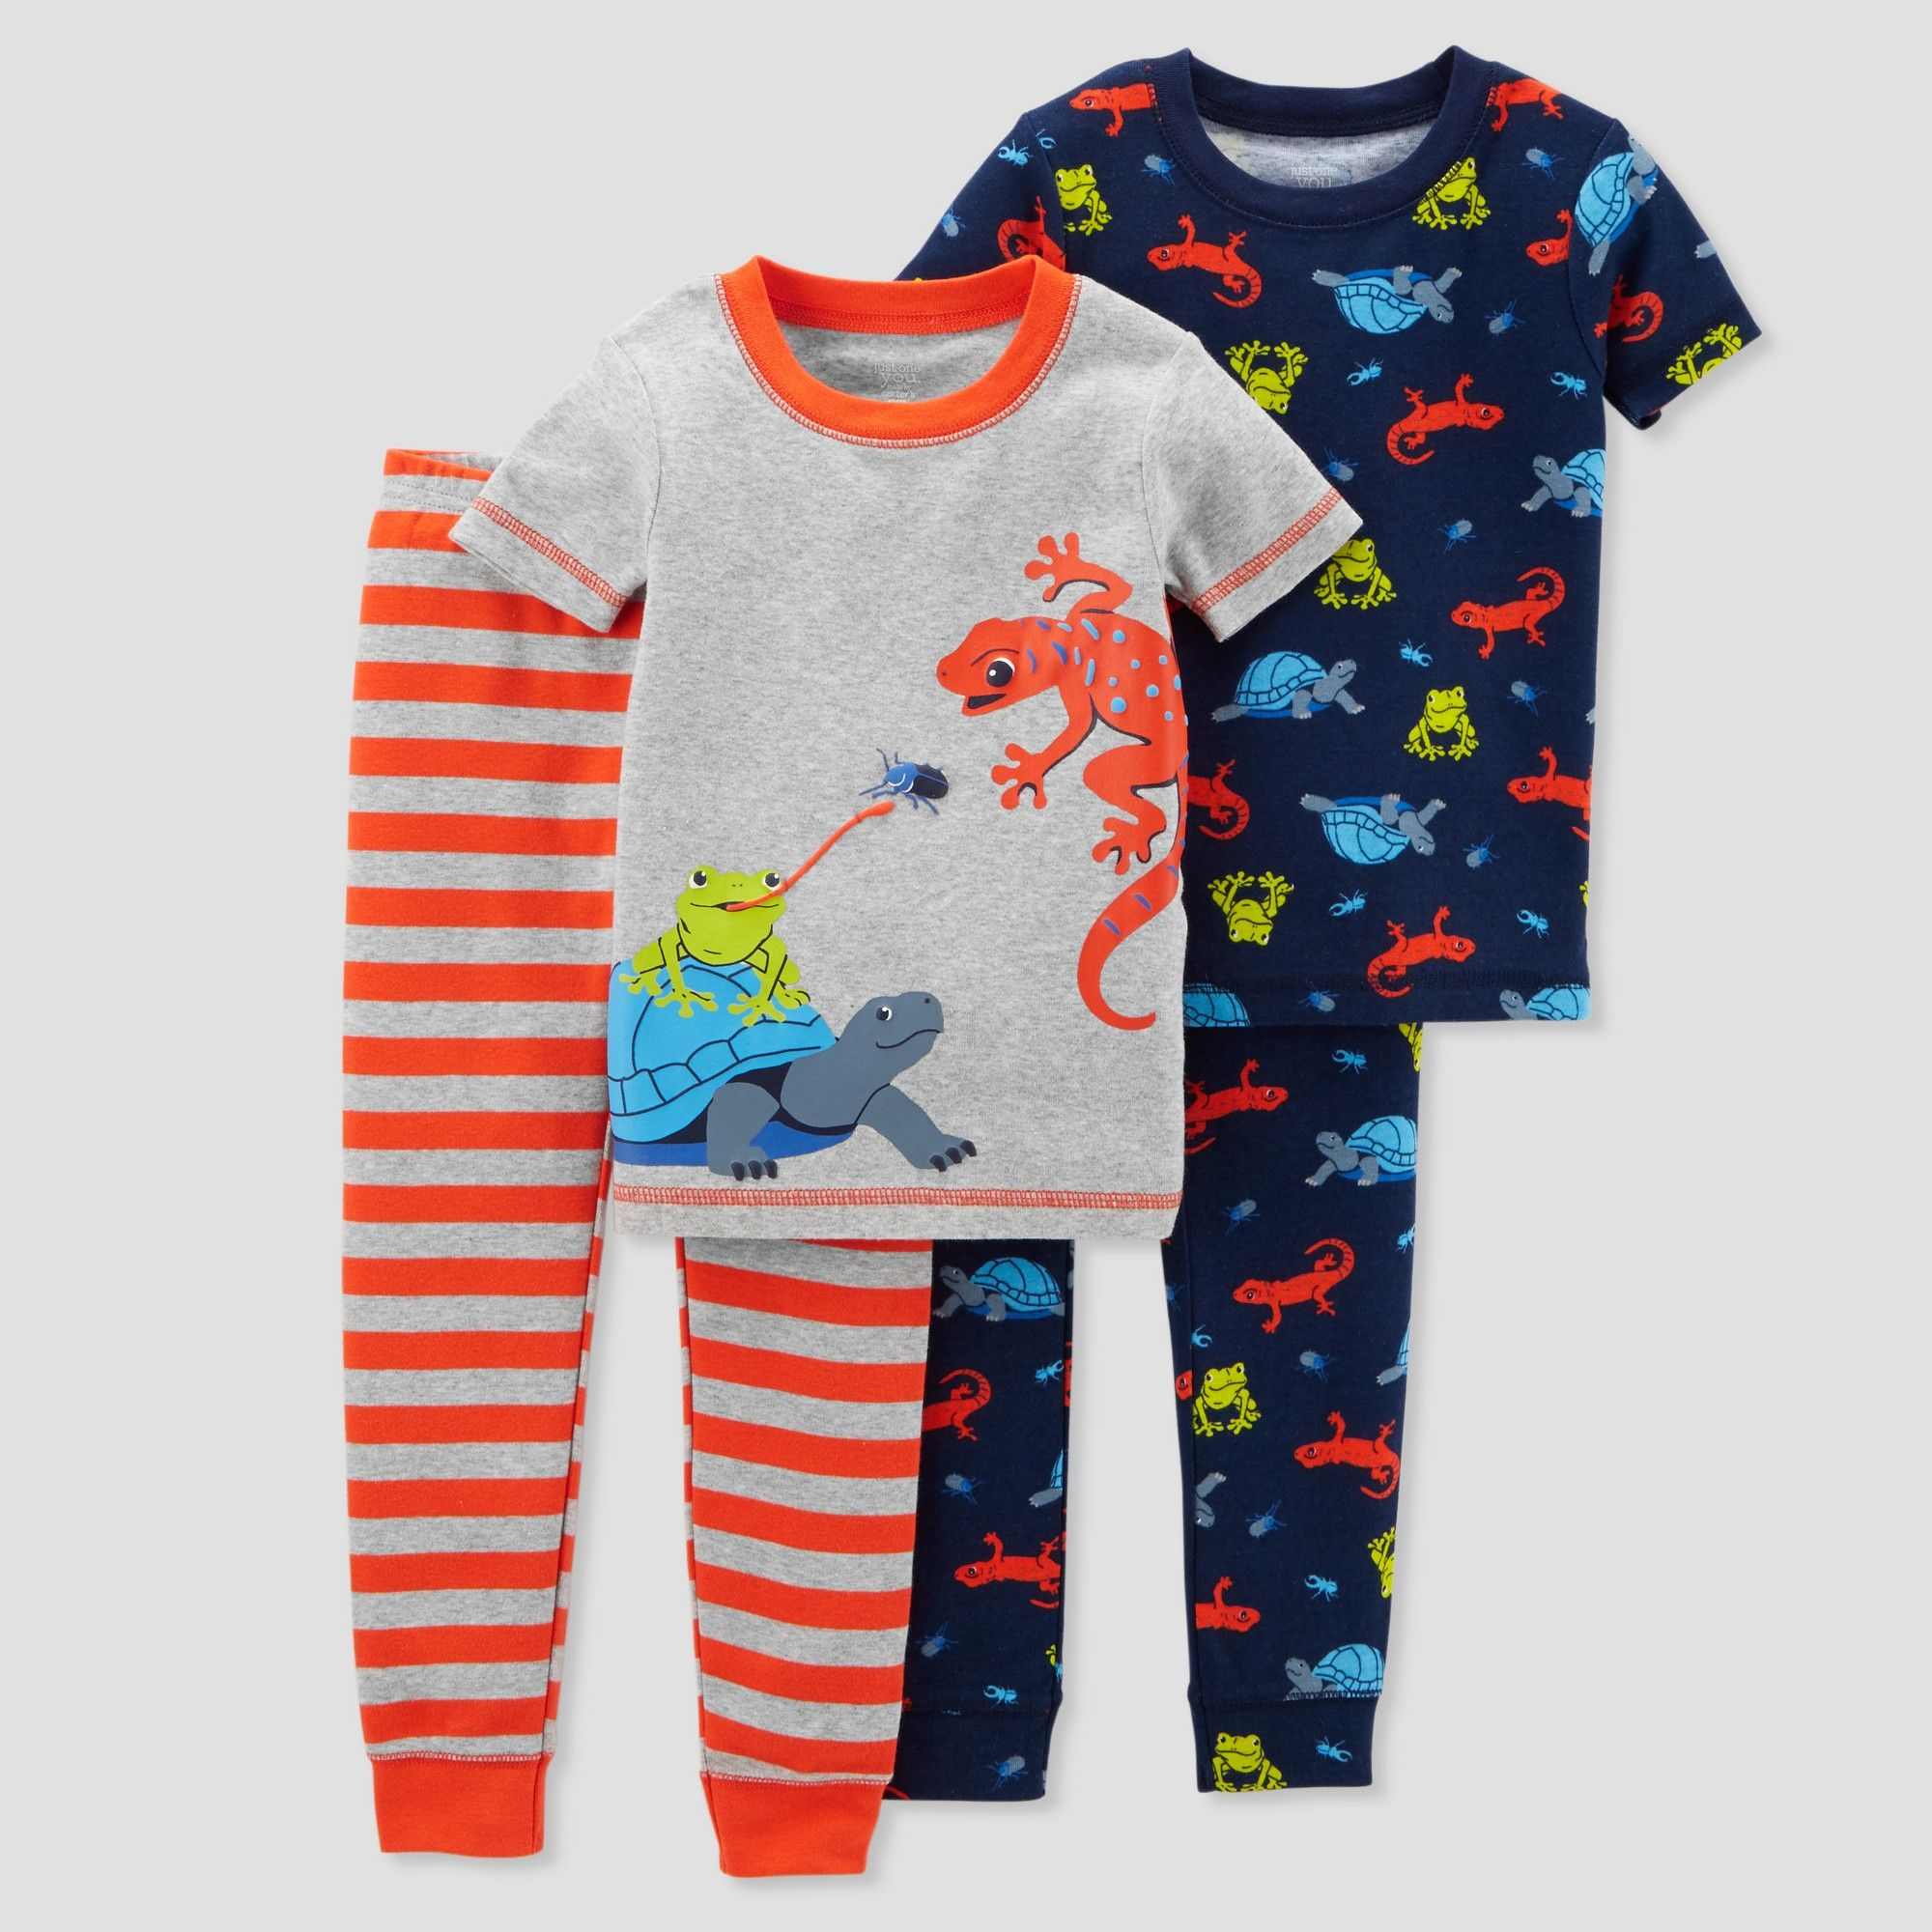 f787975a4 Toddler Boys  4pc Cotton Frog Pajama Set - Just One You made by ...